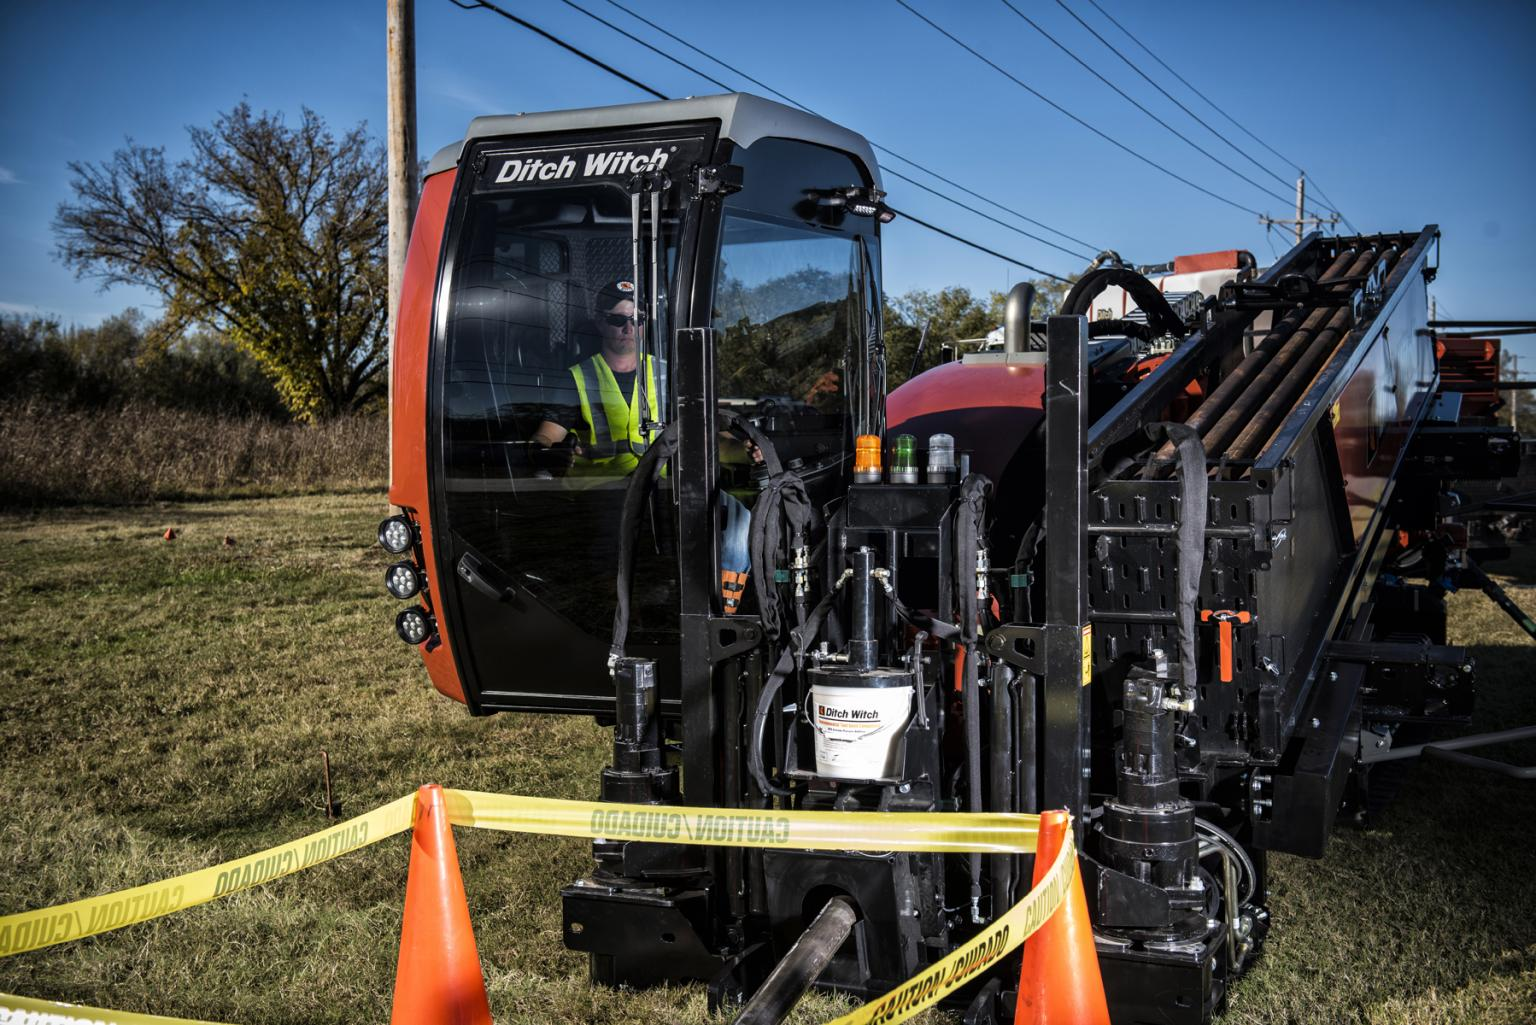 The new JT40 horizontal directional drill from Ditch Witch